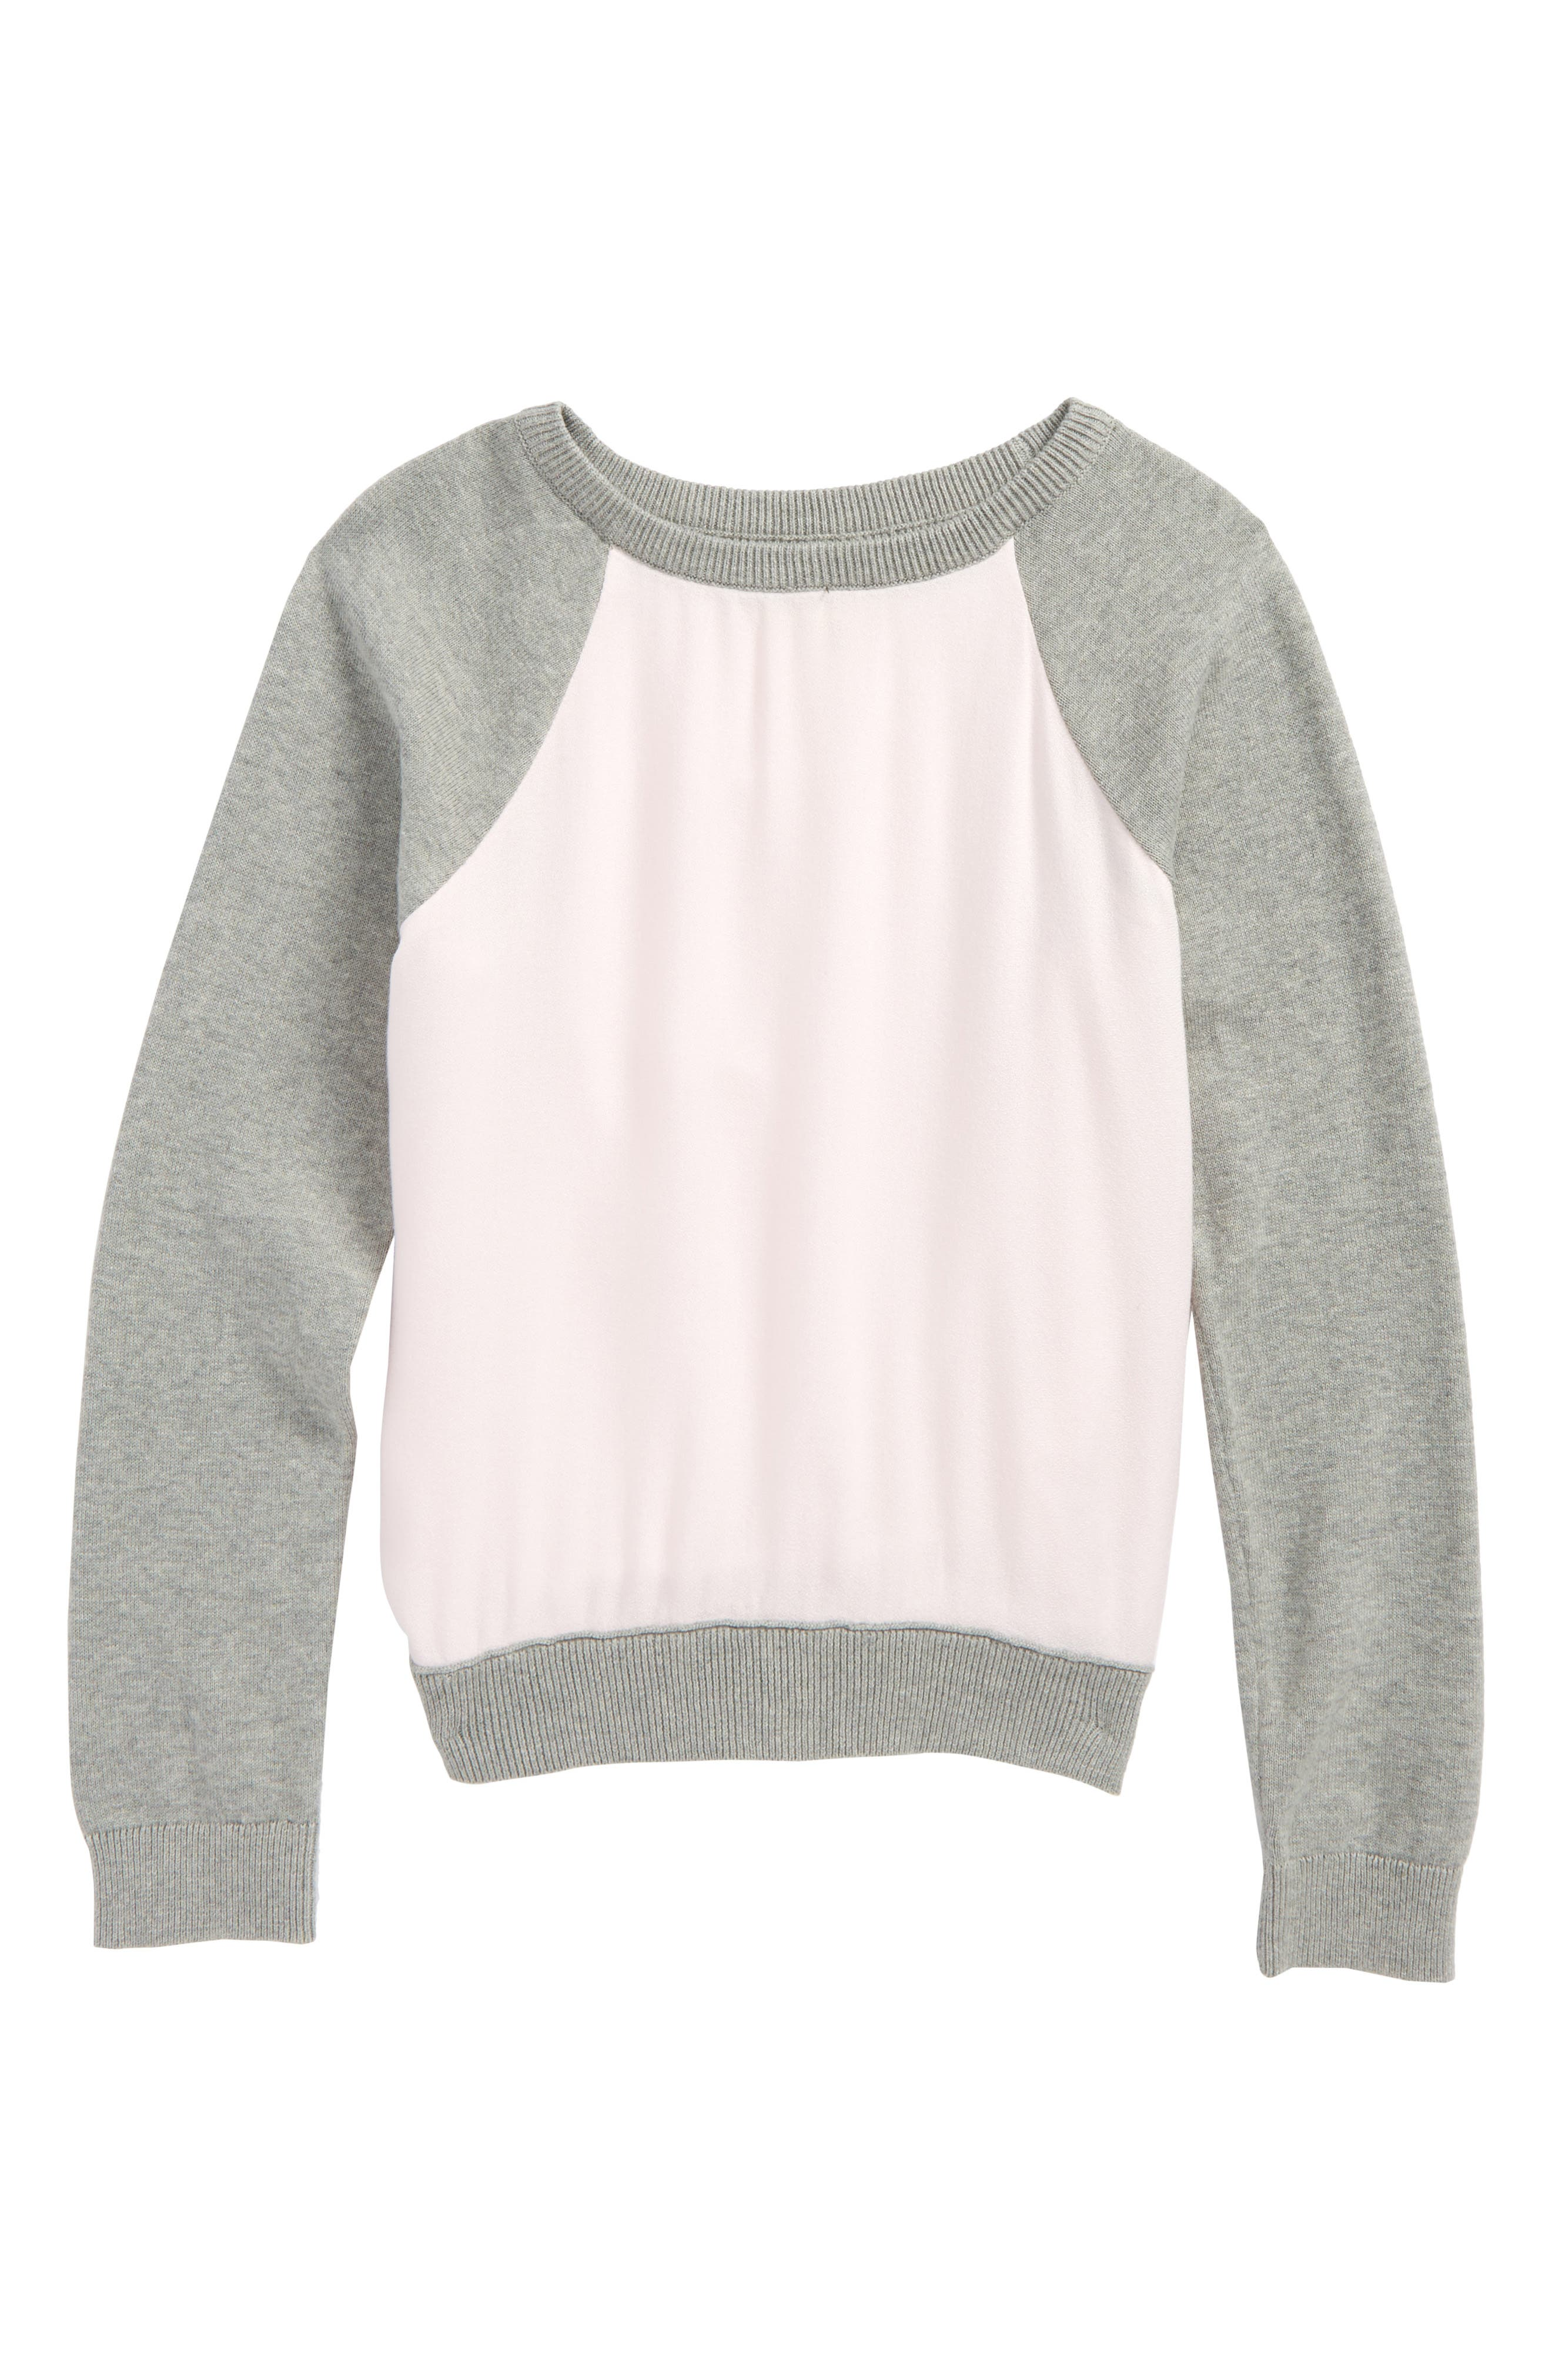 Knit to Woven Sweatshirt,                         Main,                         color,